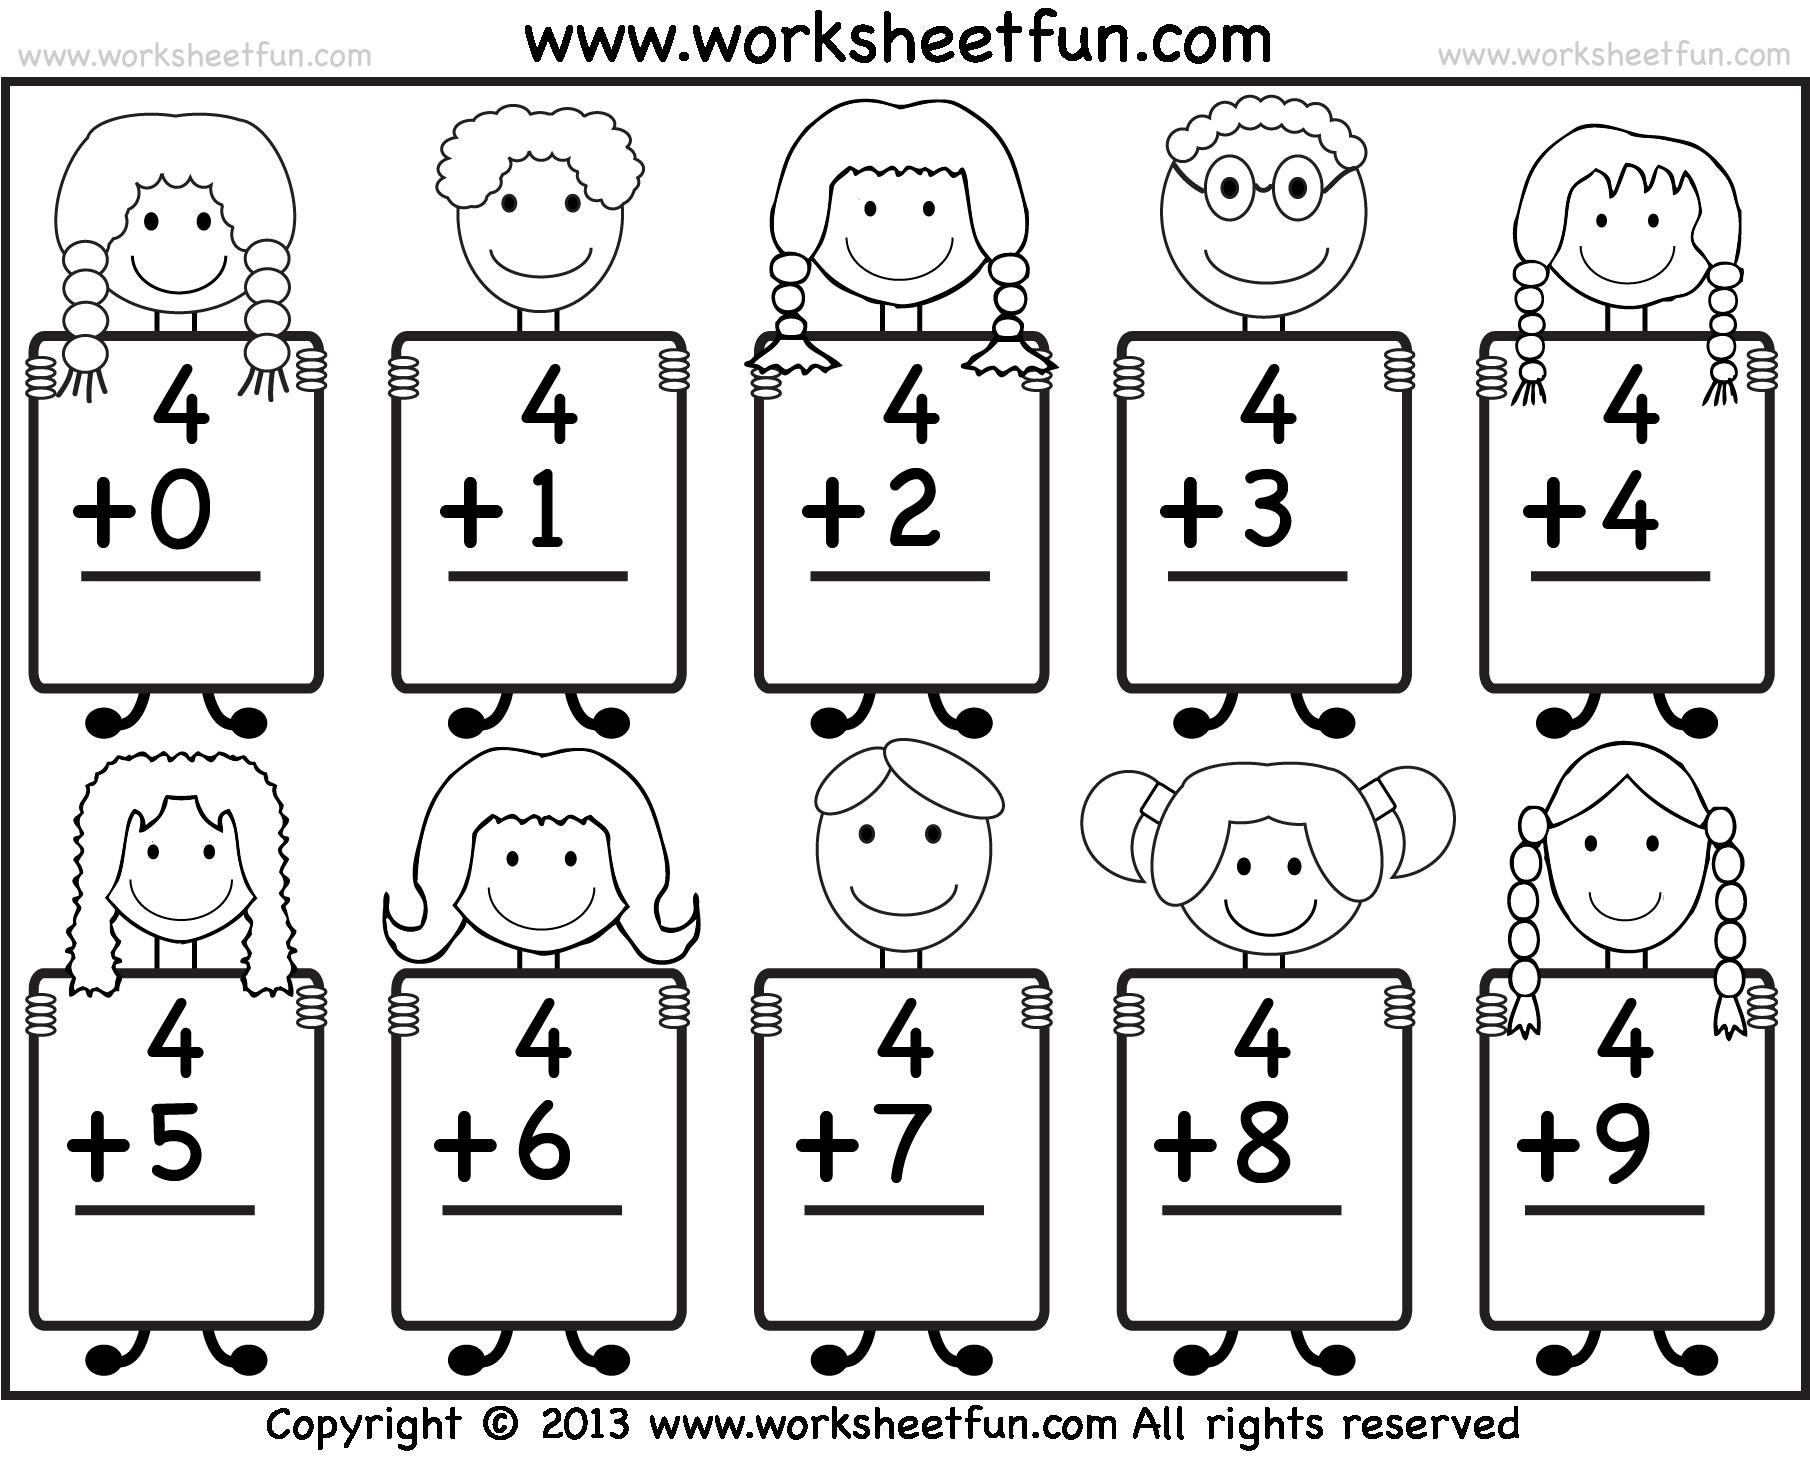 Worksheets Printable Math Worksheets For Kids free printable math worksheets for kindergarten addition 1 png addition